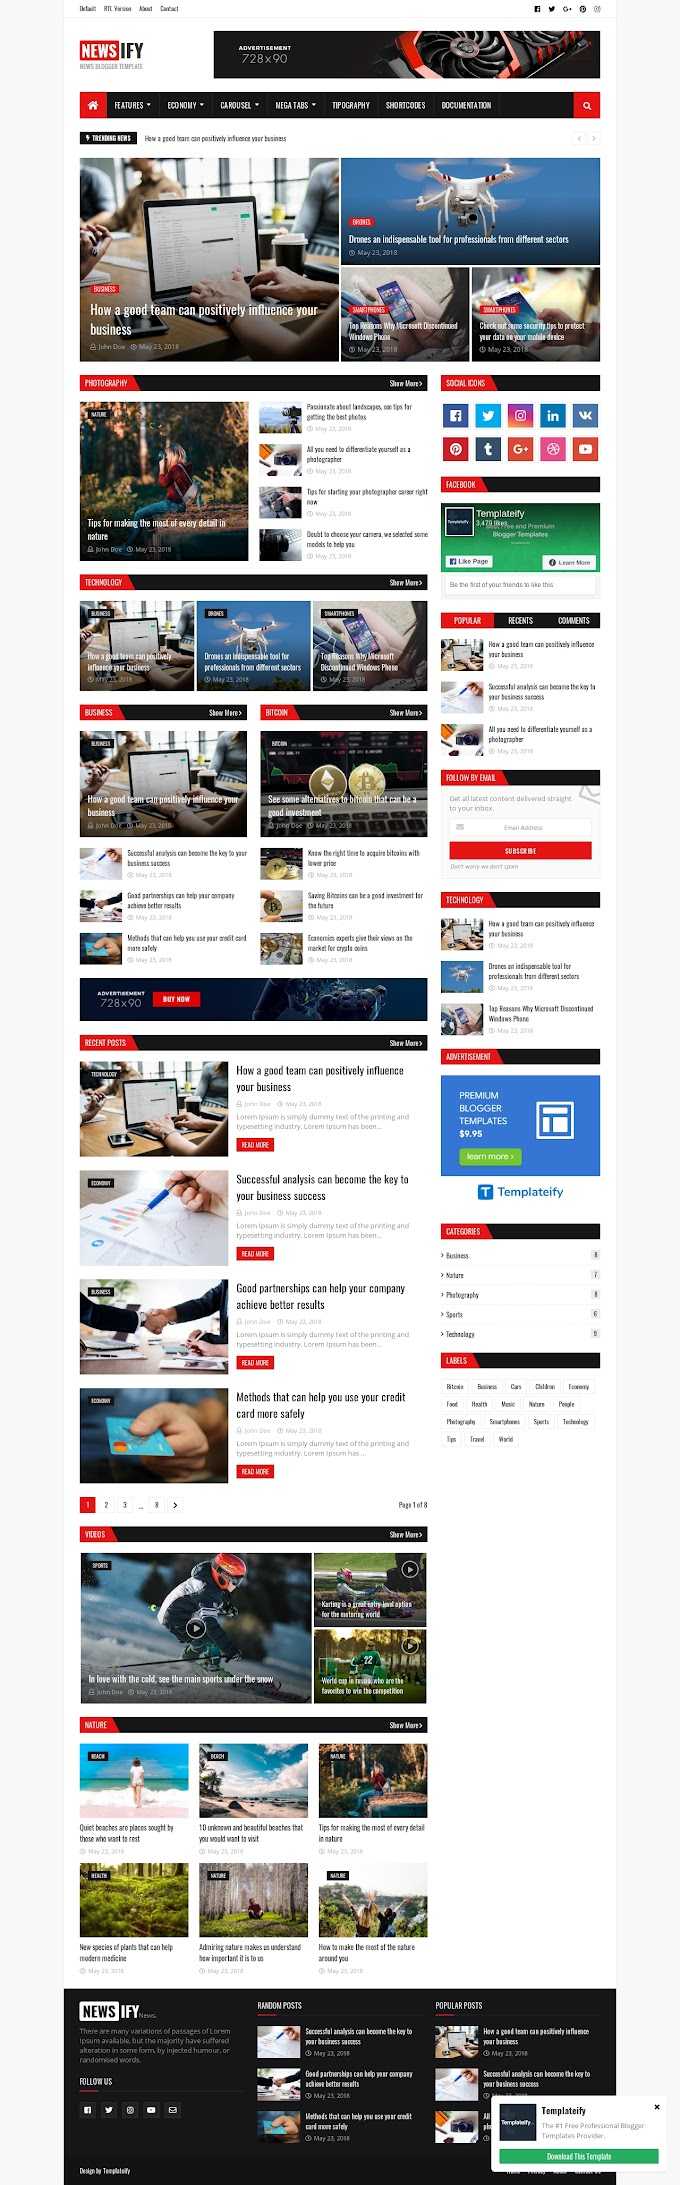 Review tentang Newsify Blogger Template